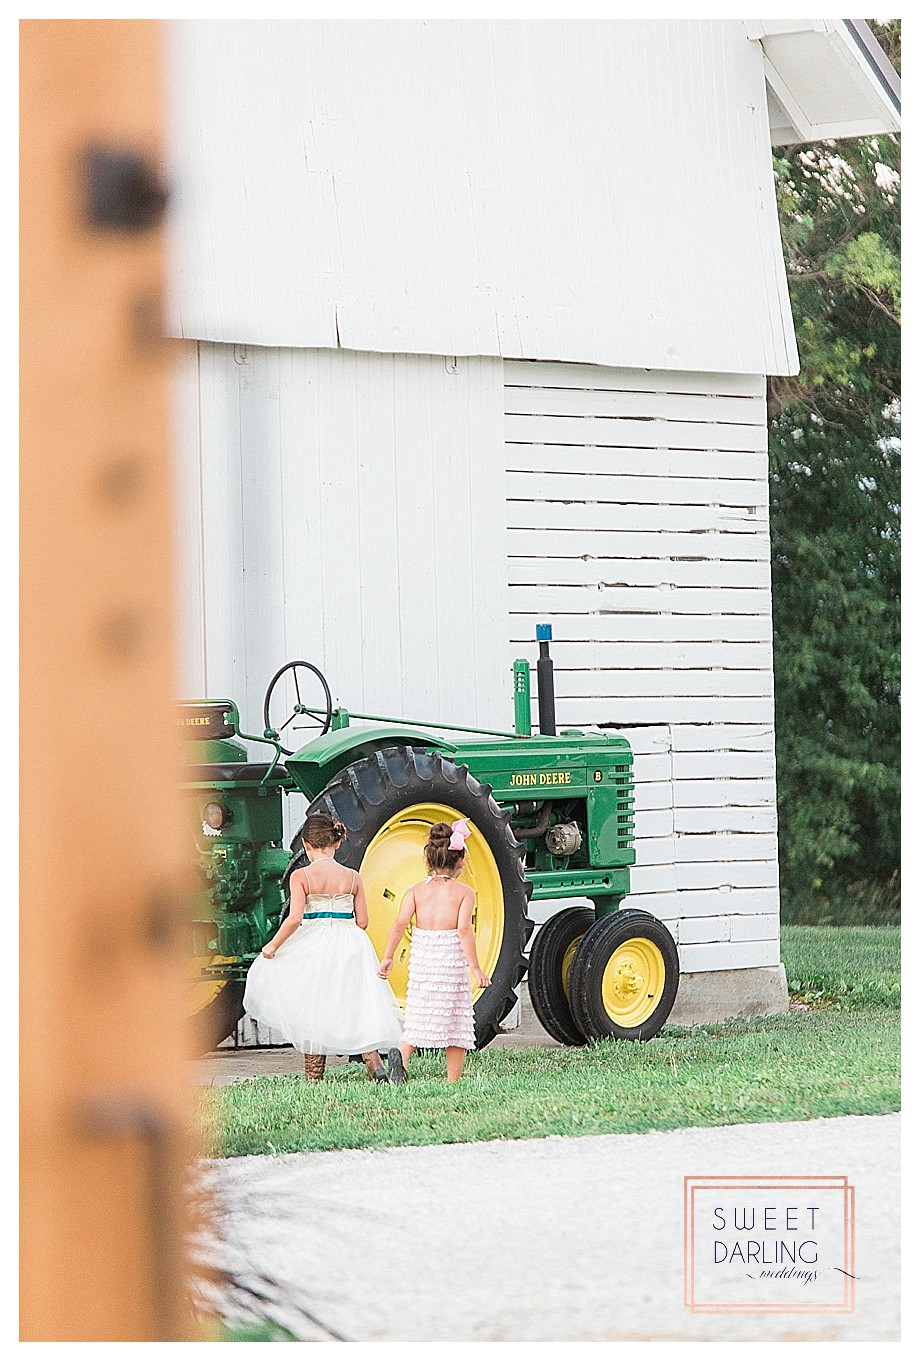 flower girl at wedding with John Deere tractor